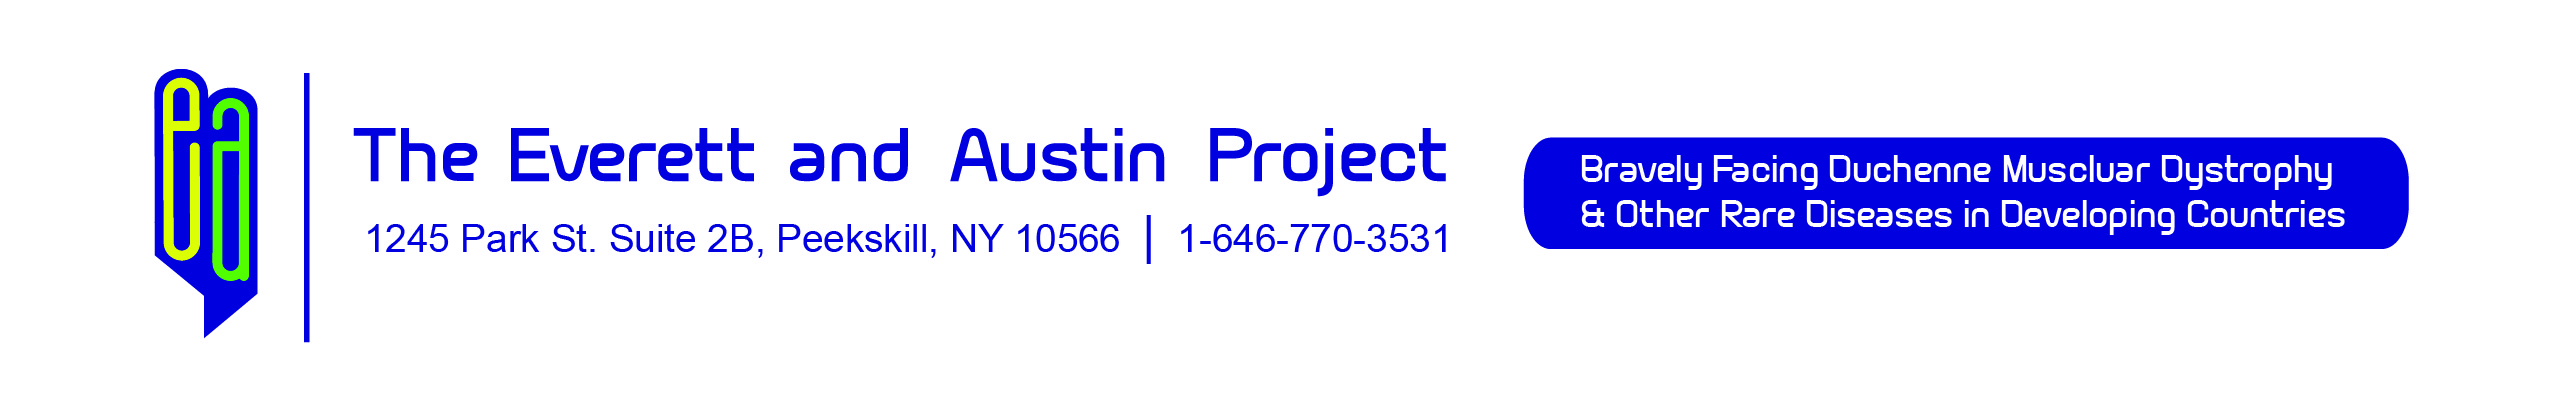 The Everett and Austin Project, Inc.